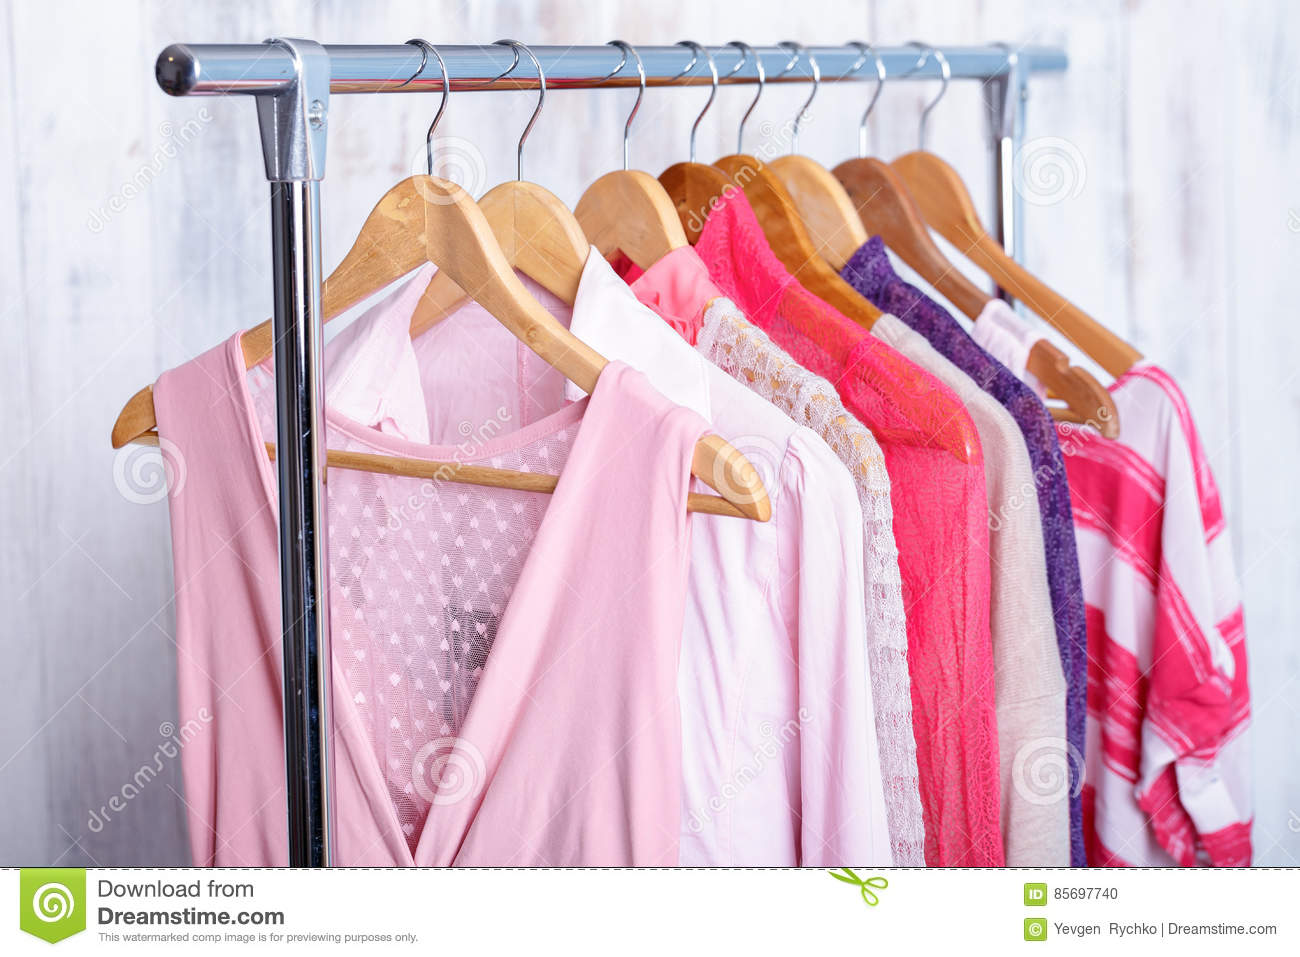 Download Pink Womens Clothes On Hangers On Rack In Fashion Store. Closet  Stock Photo